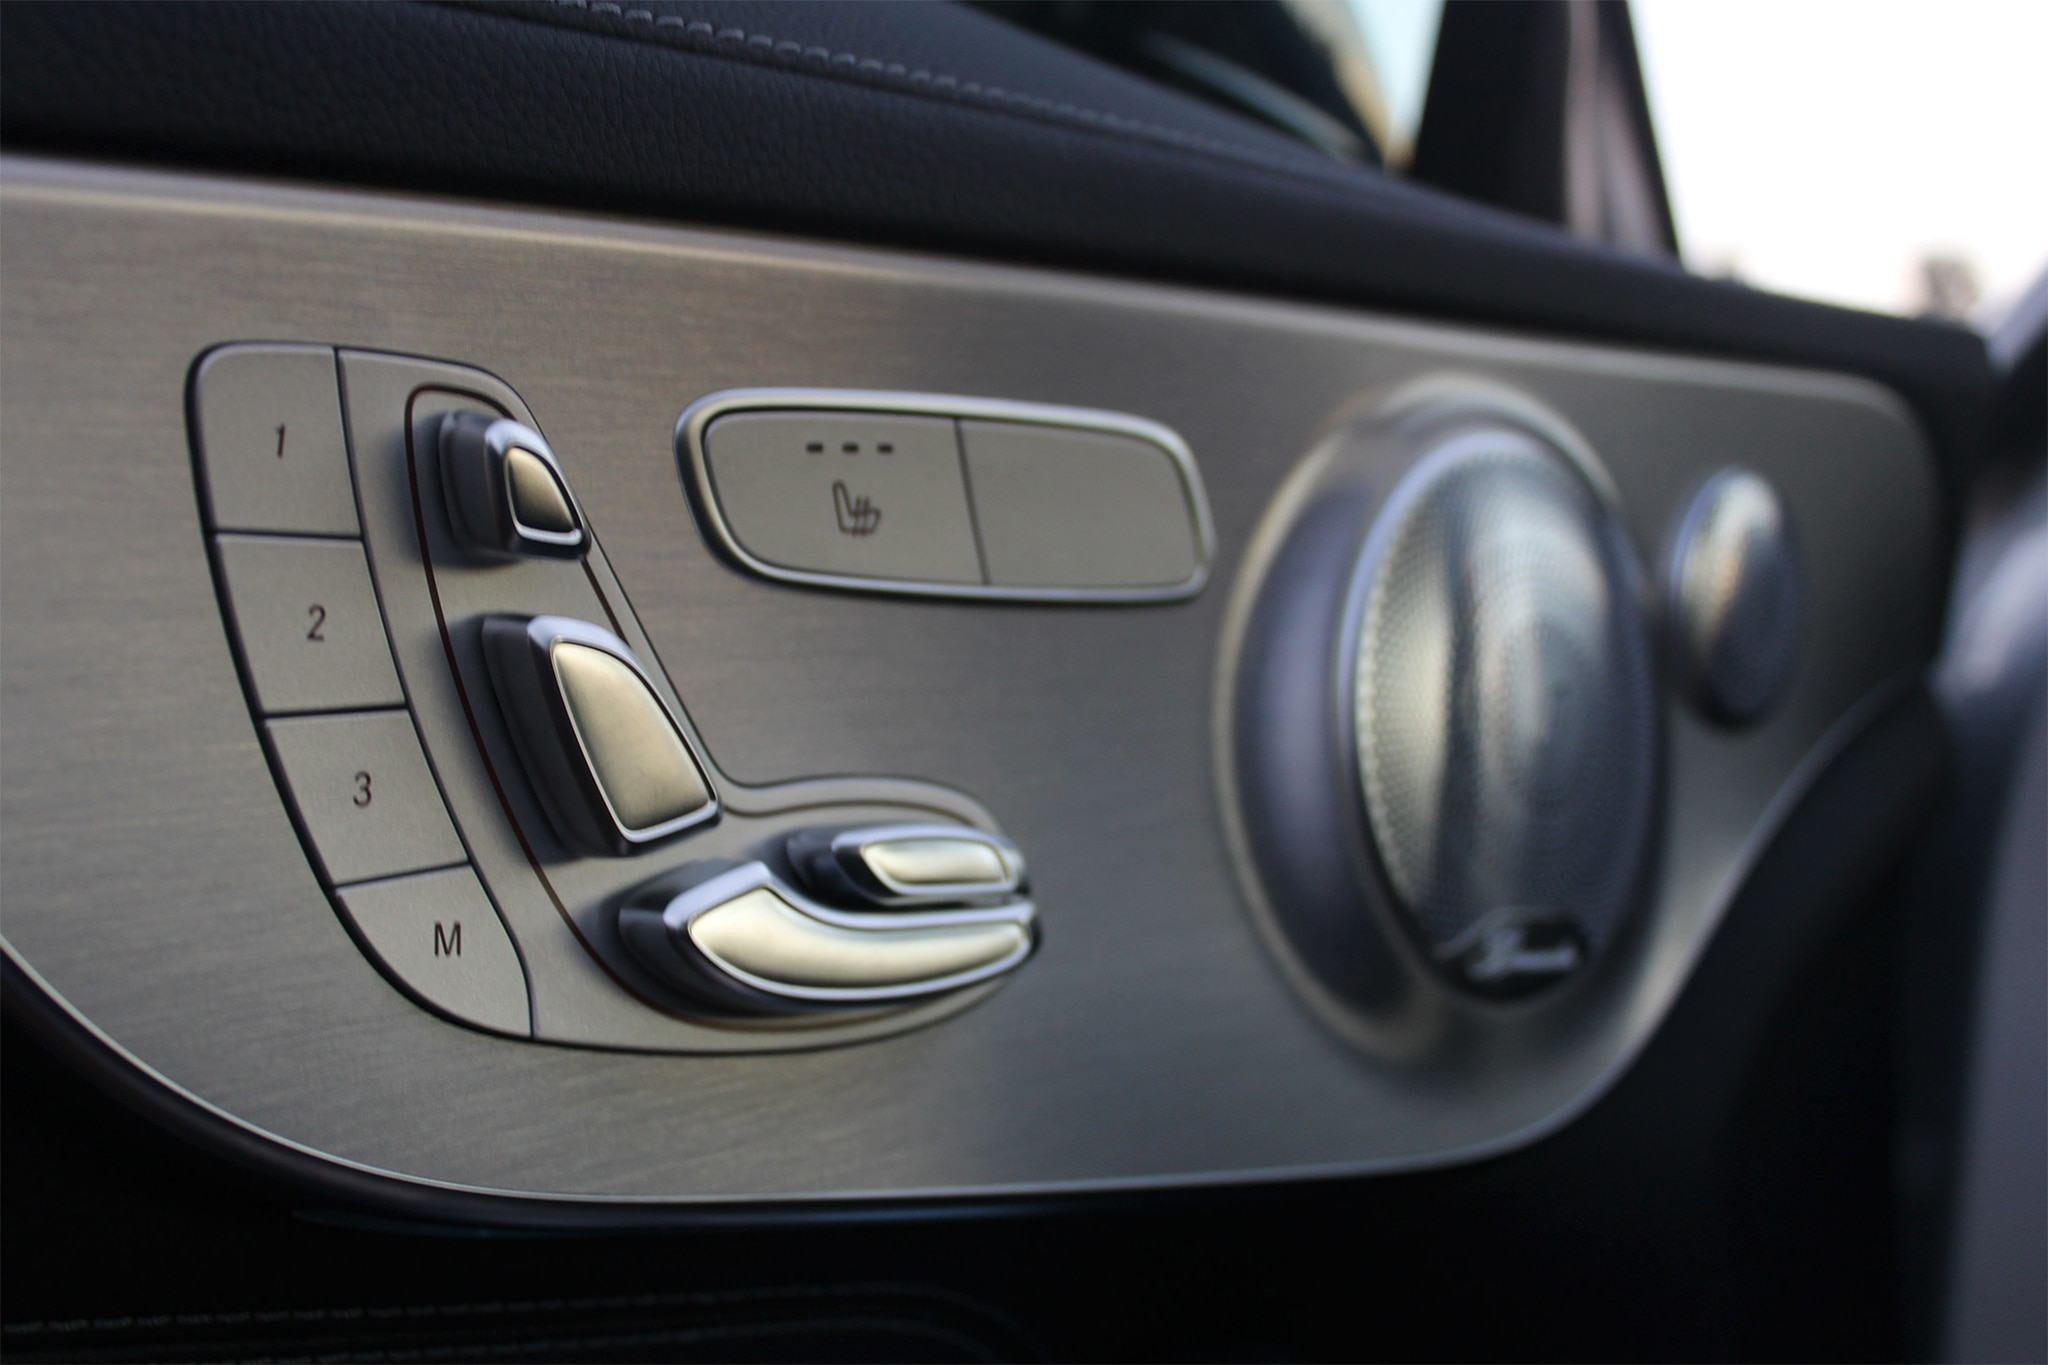 2017 Mercedes AMG C43 Coupe Seat Controls